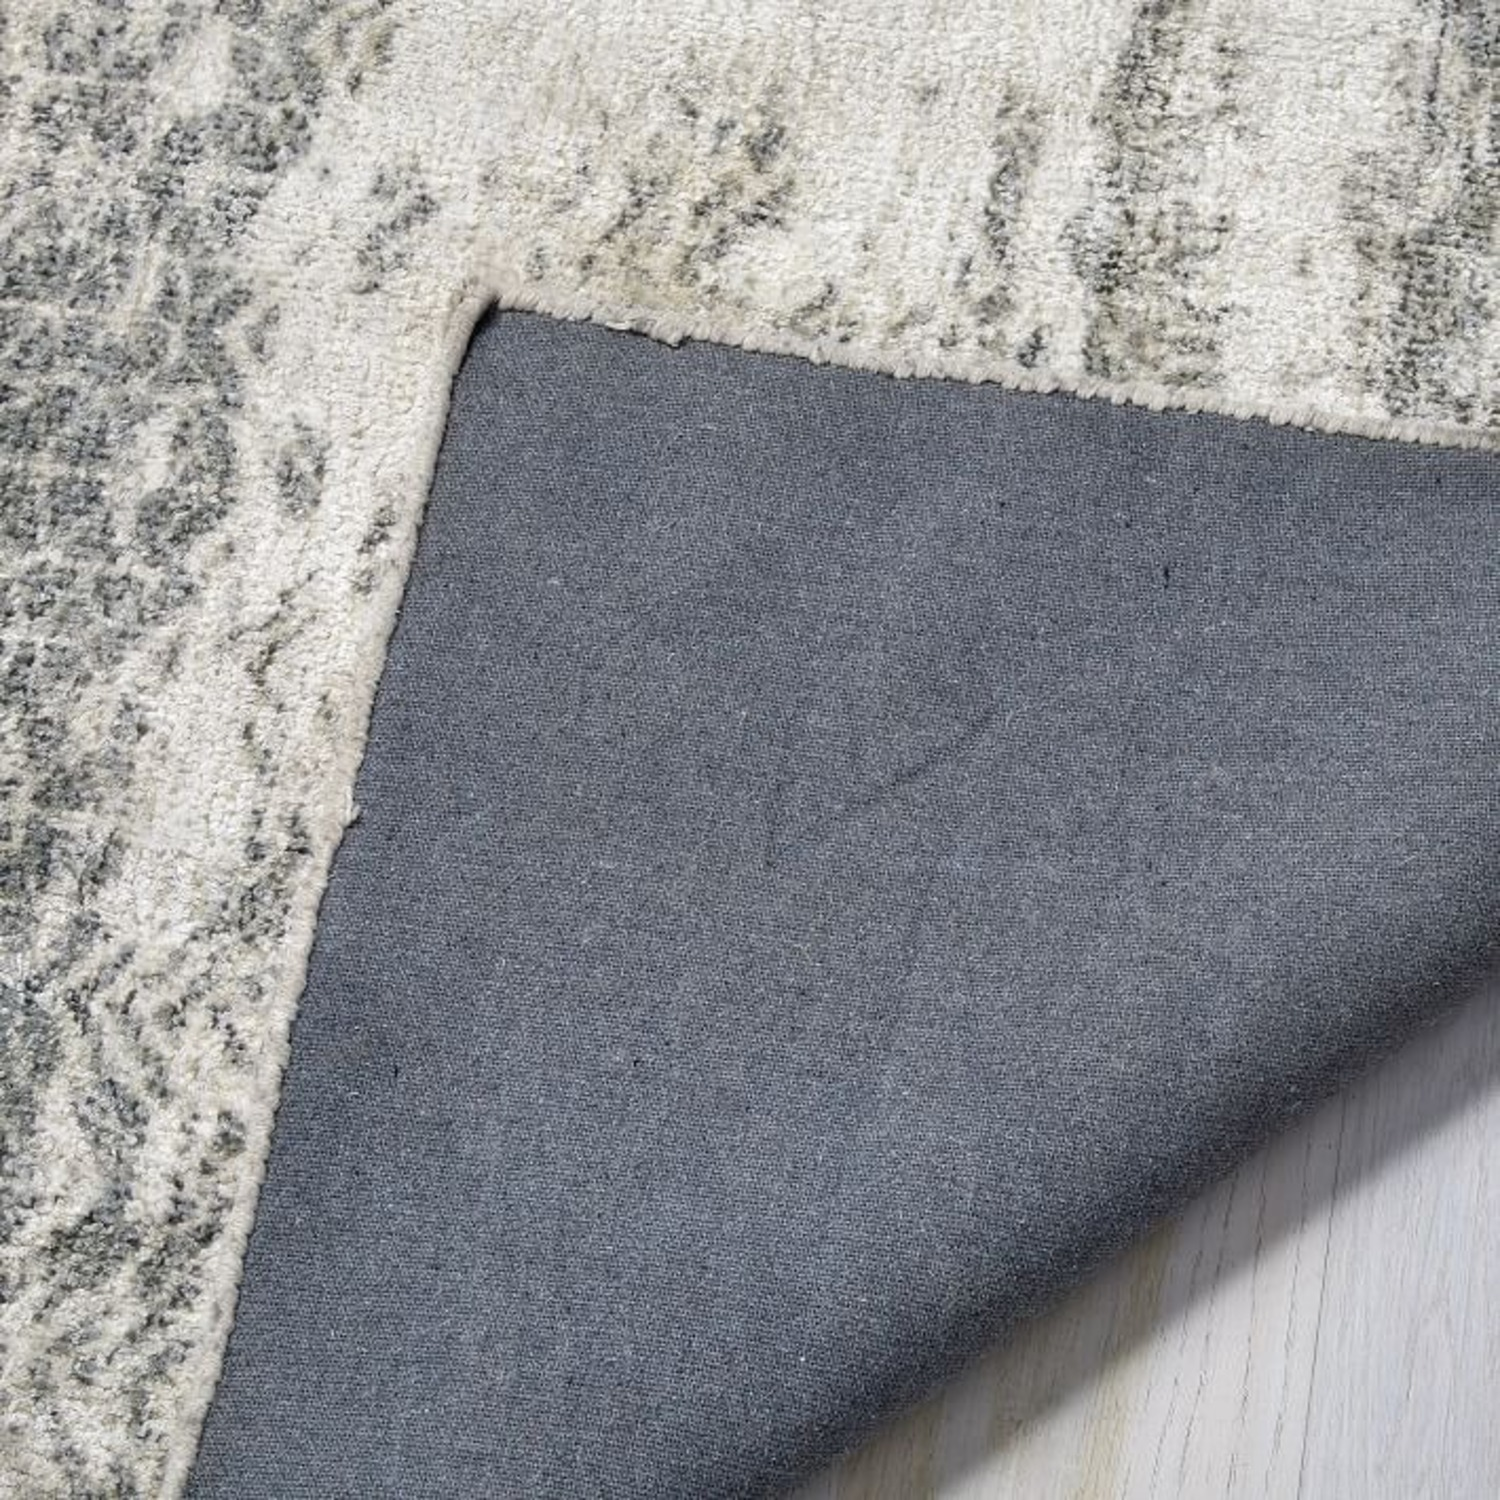 West Elm Pharaoh Distressed Rug - image-1